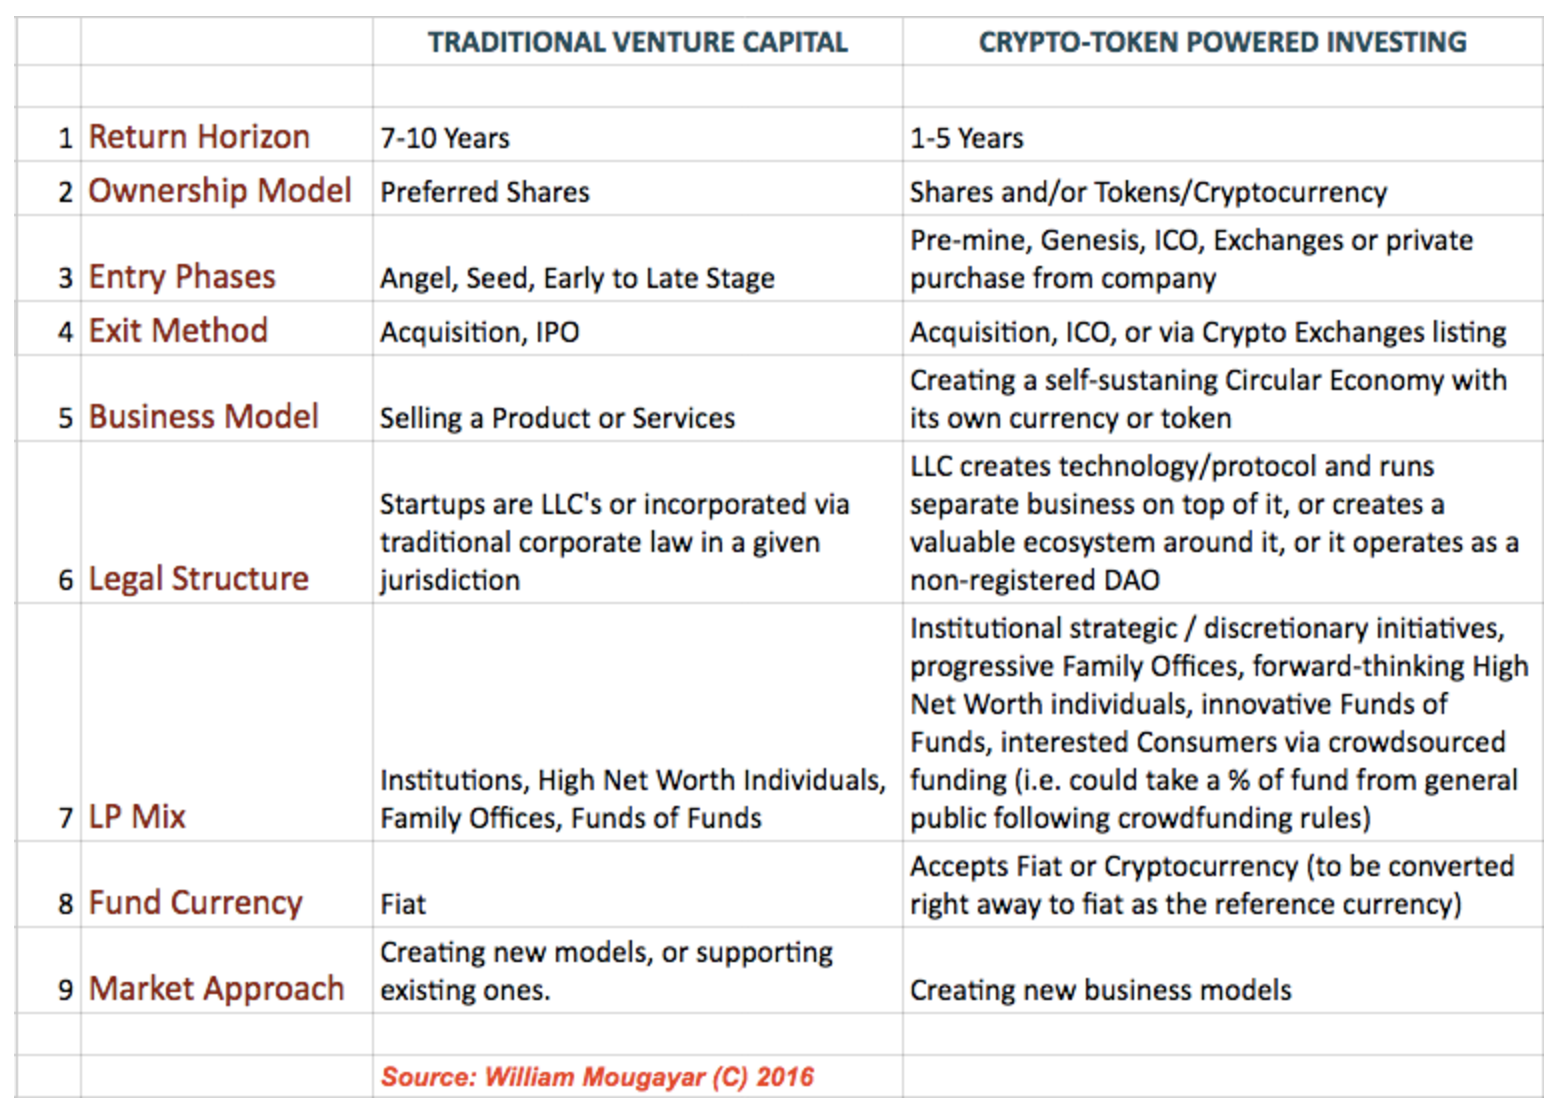 How Cryptocurrencies and Blockchain Startups Are Revolutionising Venture Capital